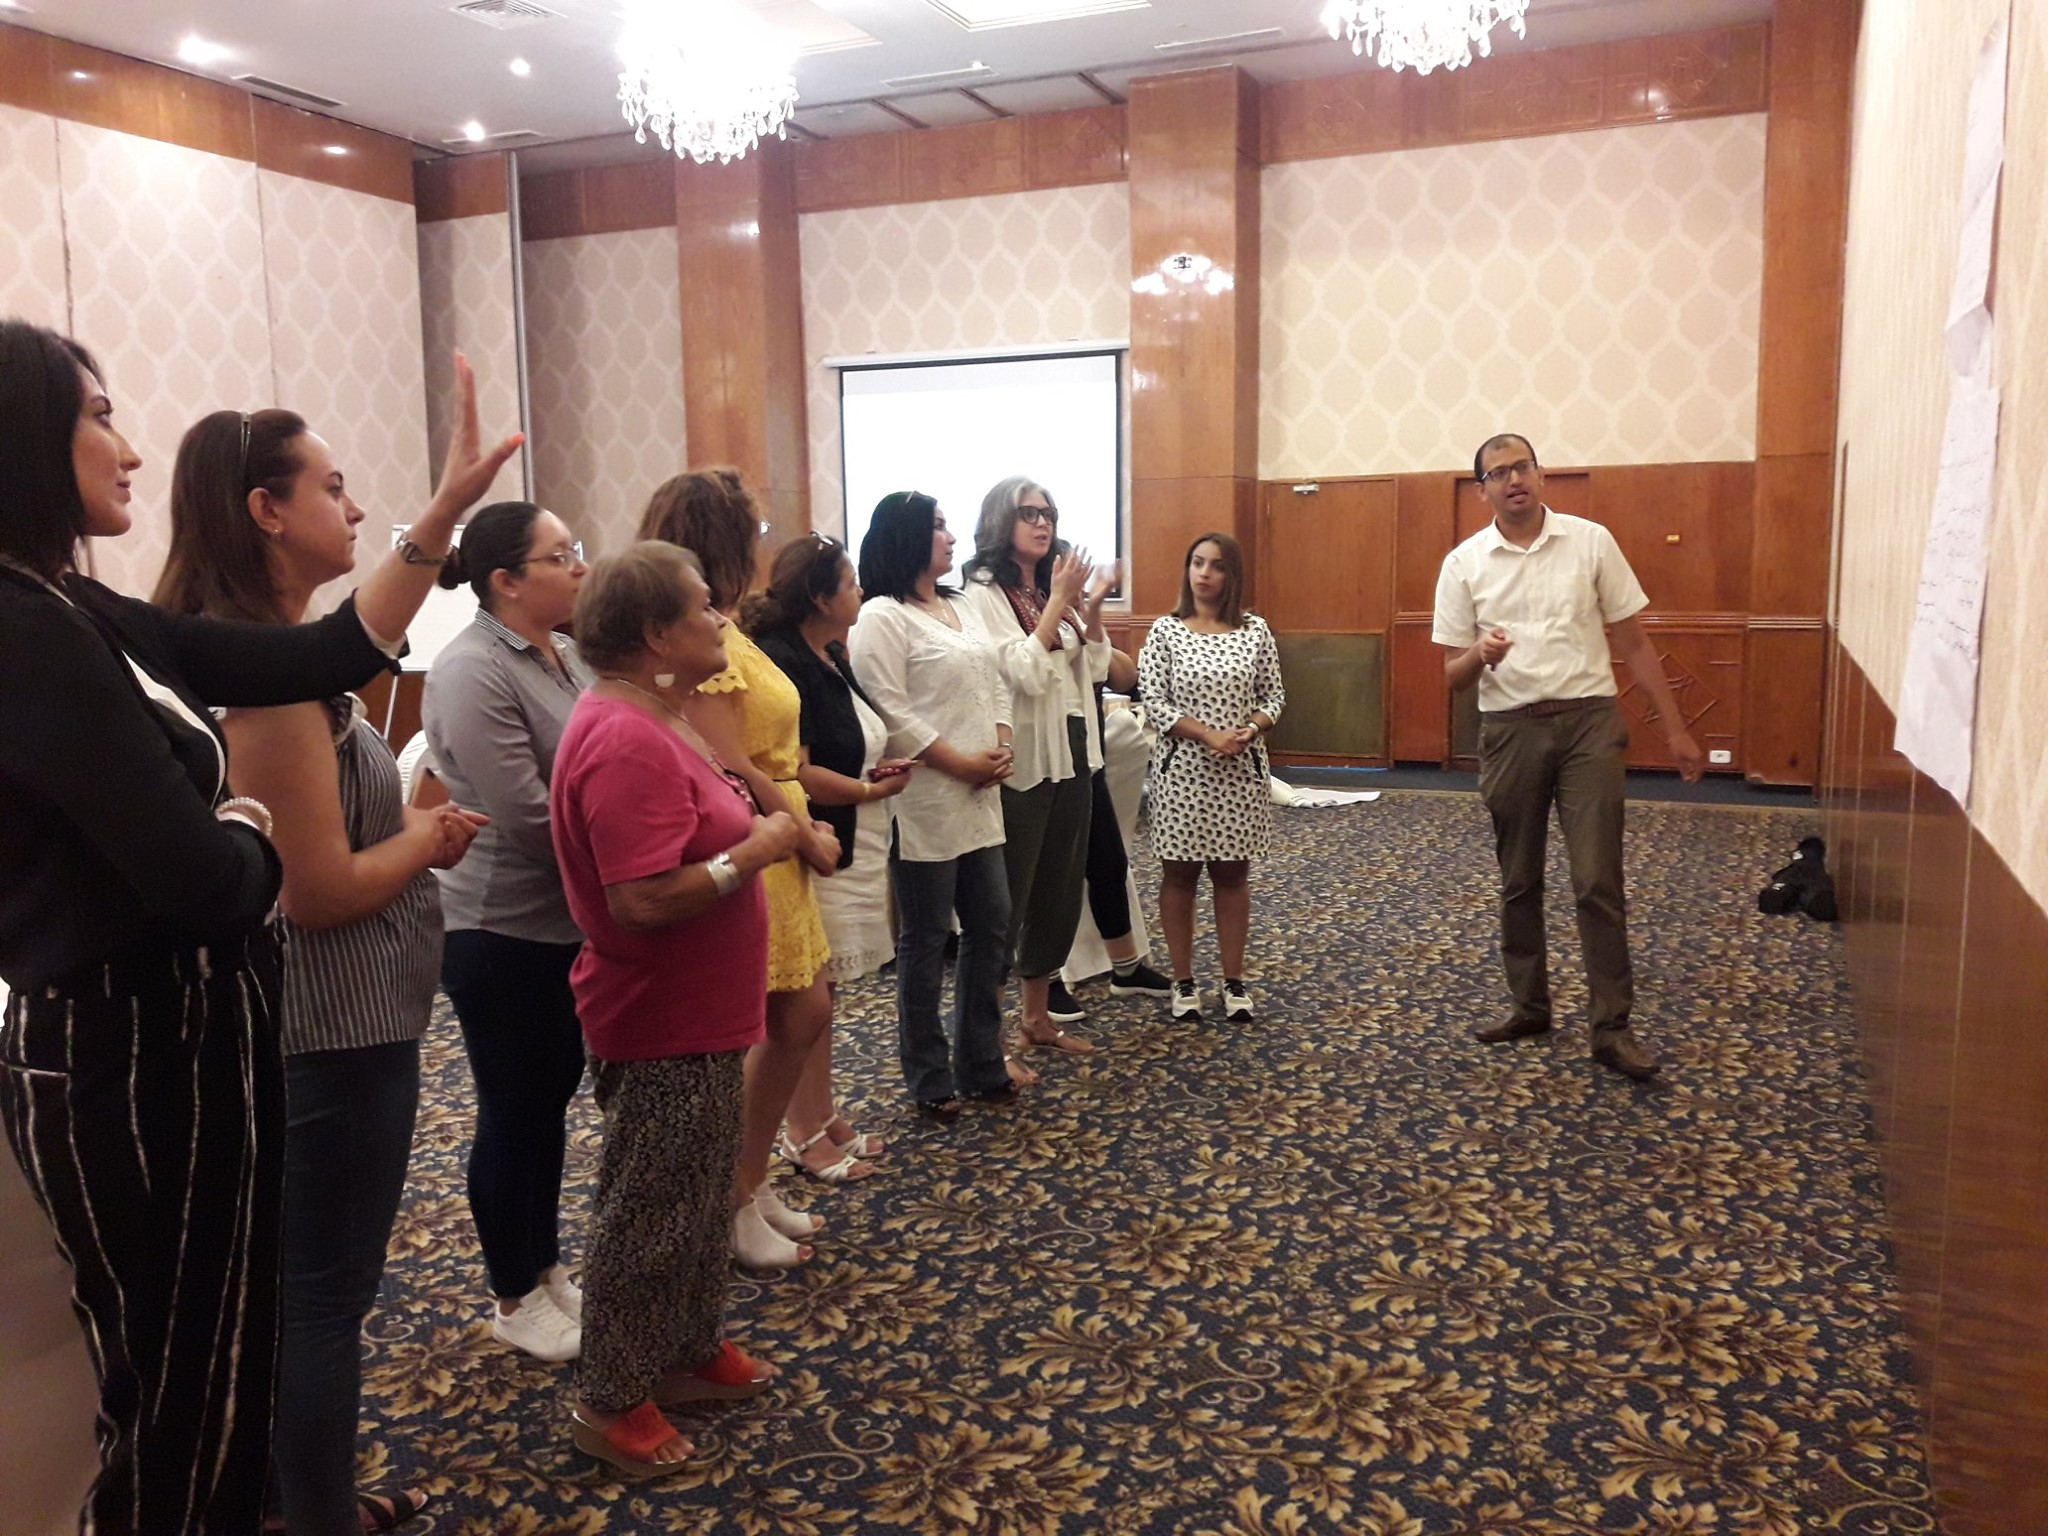 Campaign management training for women candidates in the 2019 Tunisian parliamentary elections. Photo credit: International IDEA